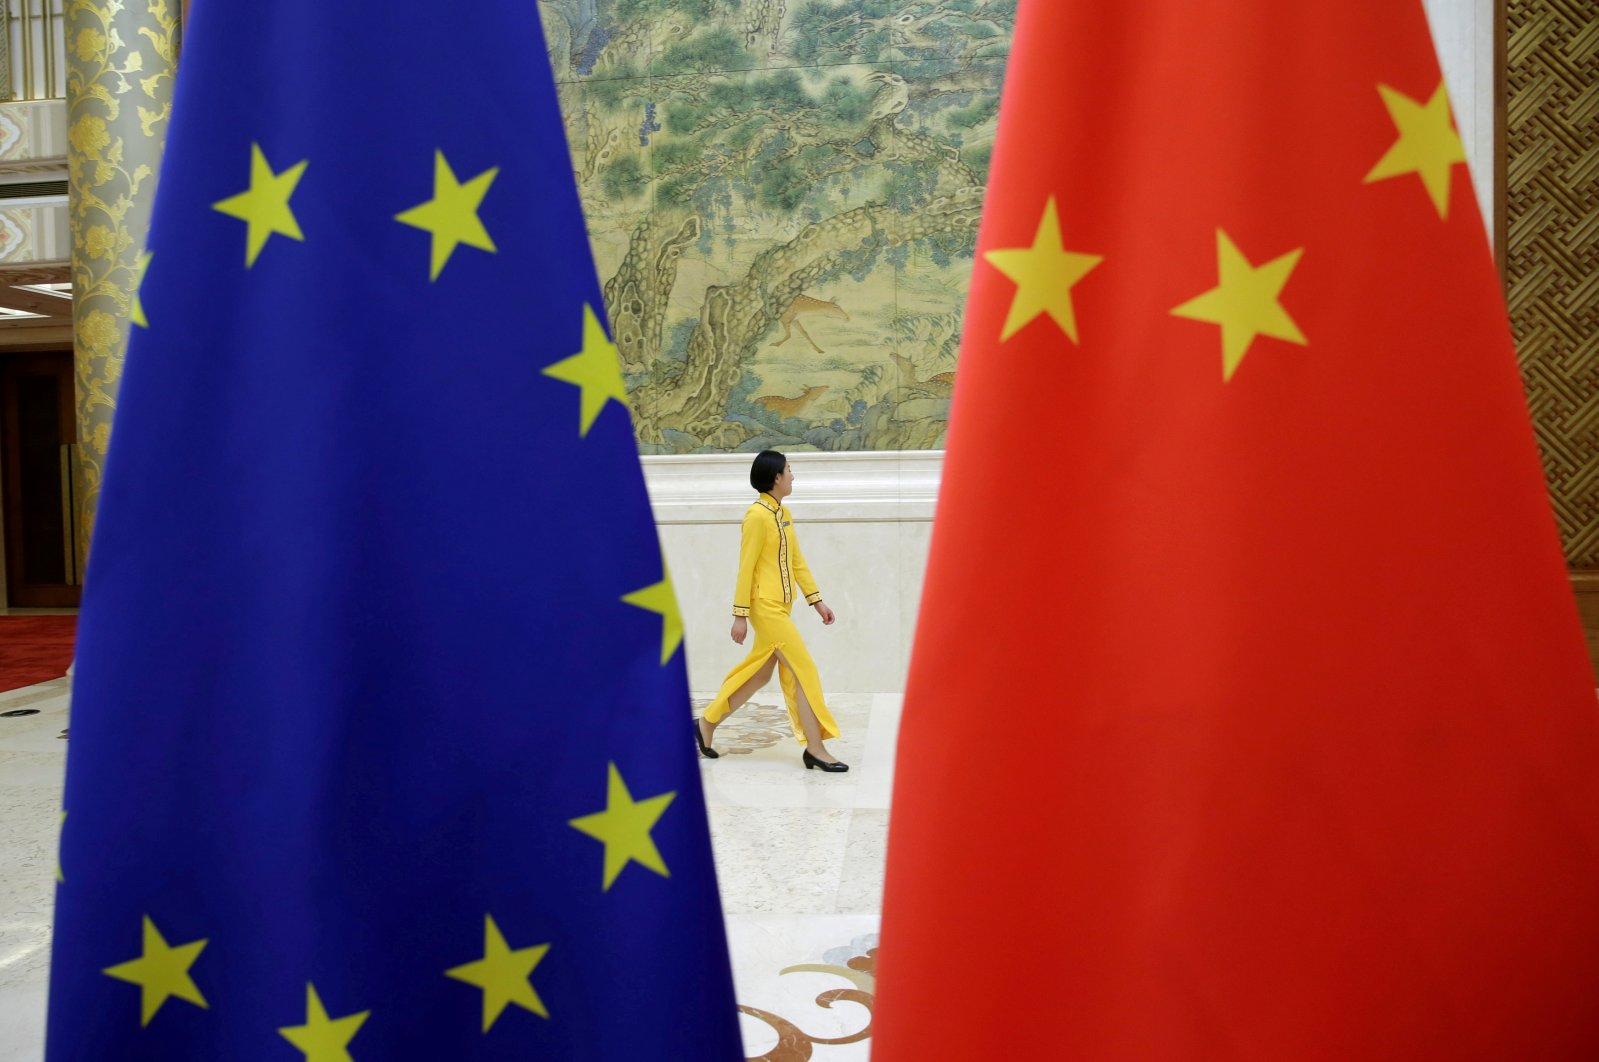 An attendant walks past EU and China flags ahead of the EU-China High-level Economic Dialogue at Diaoyutai State Guesthouse in Beijing, China, June 25, 2018. (Reuters Photo)